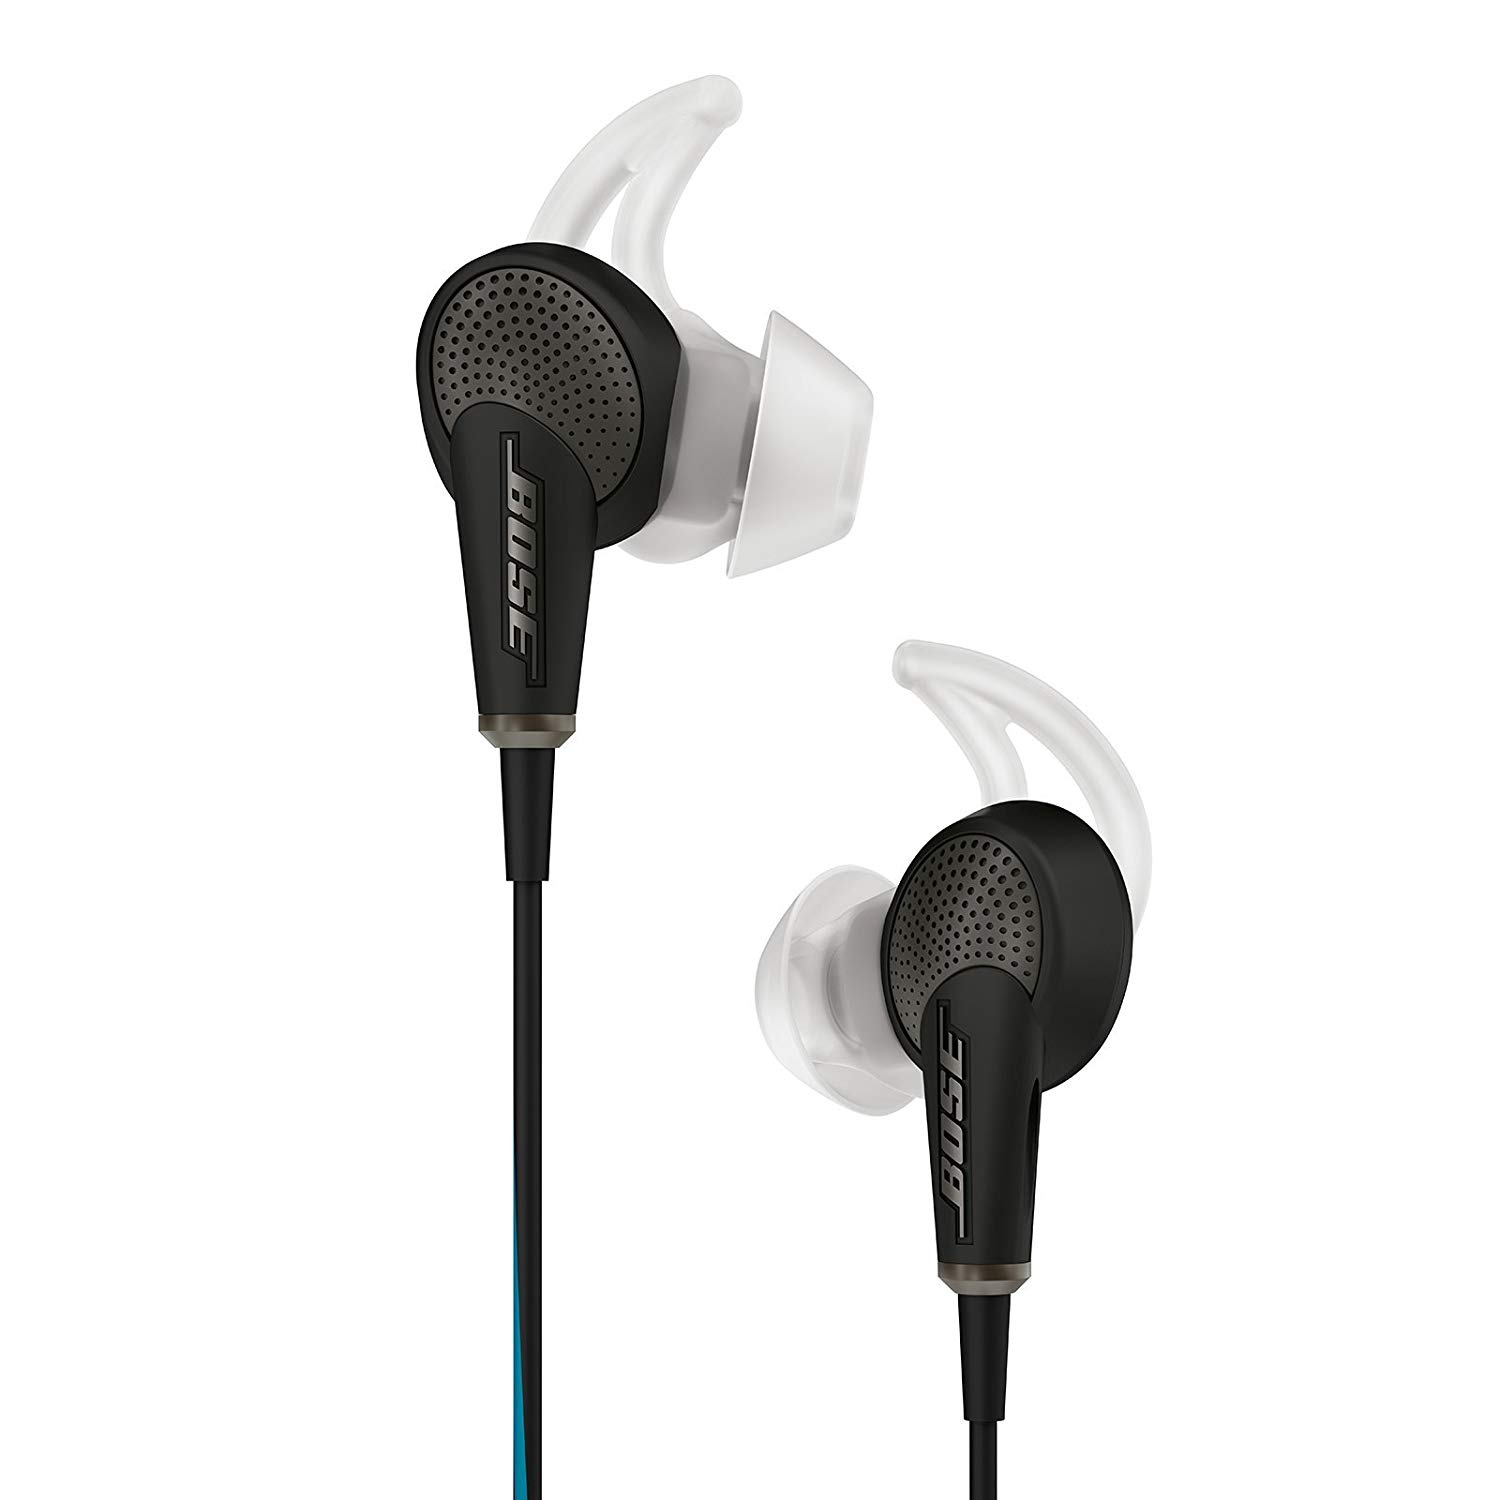 Bose QC20 Noise Cancelling Headphones – Apple Devices